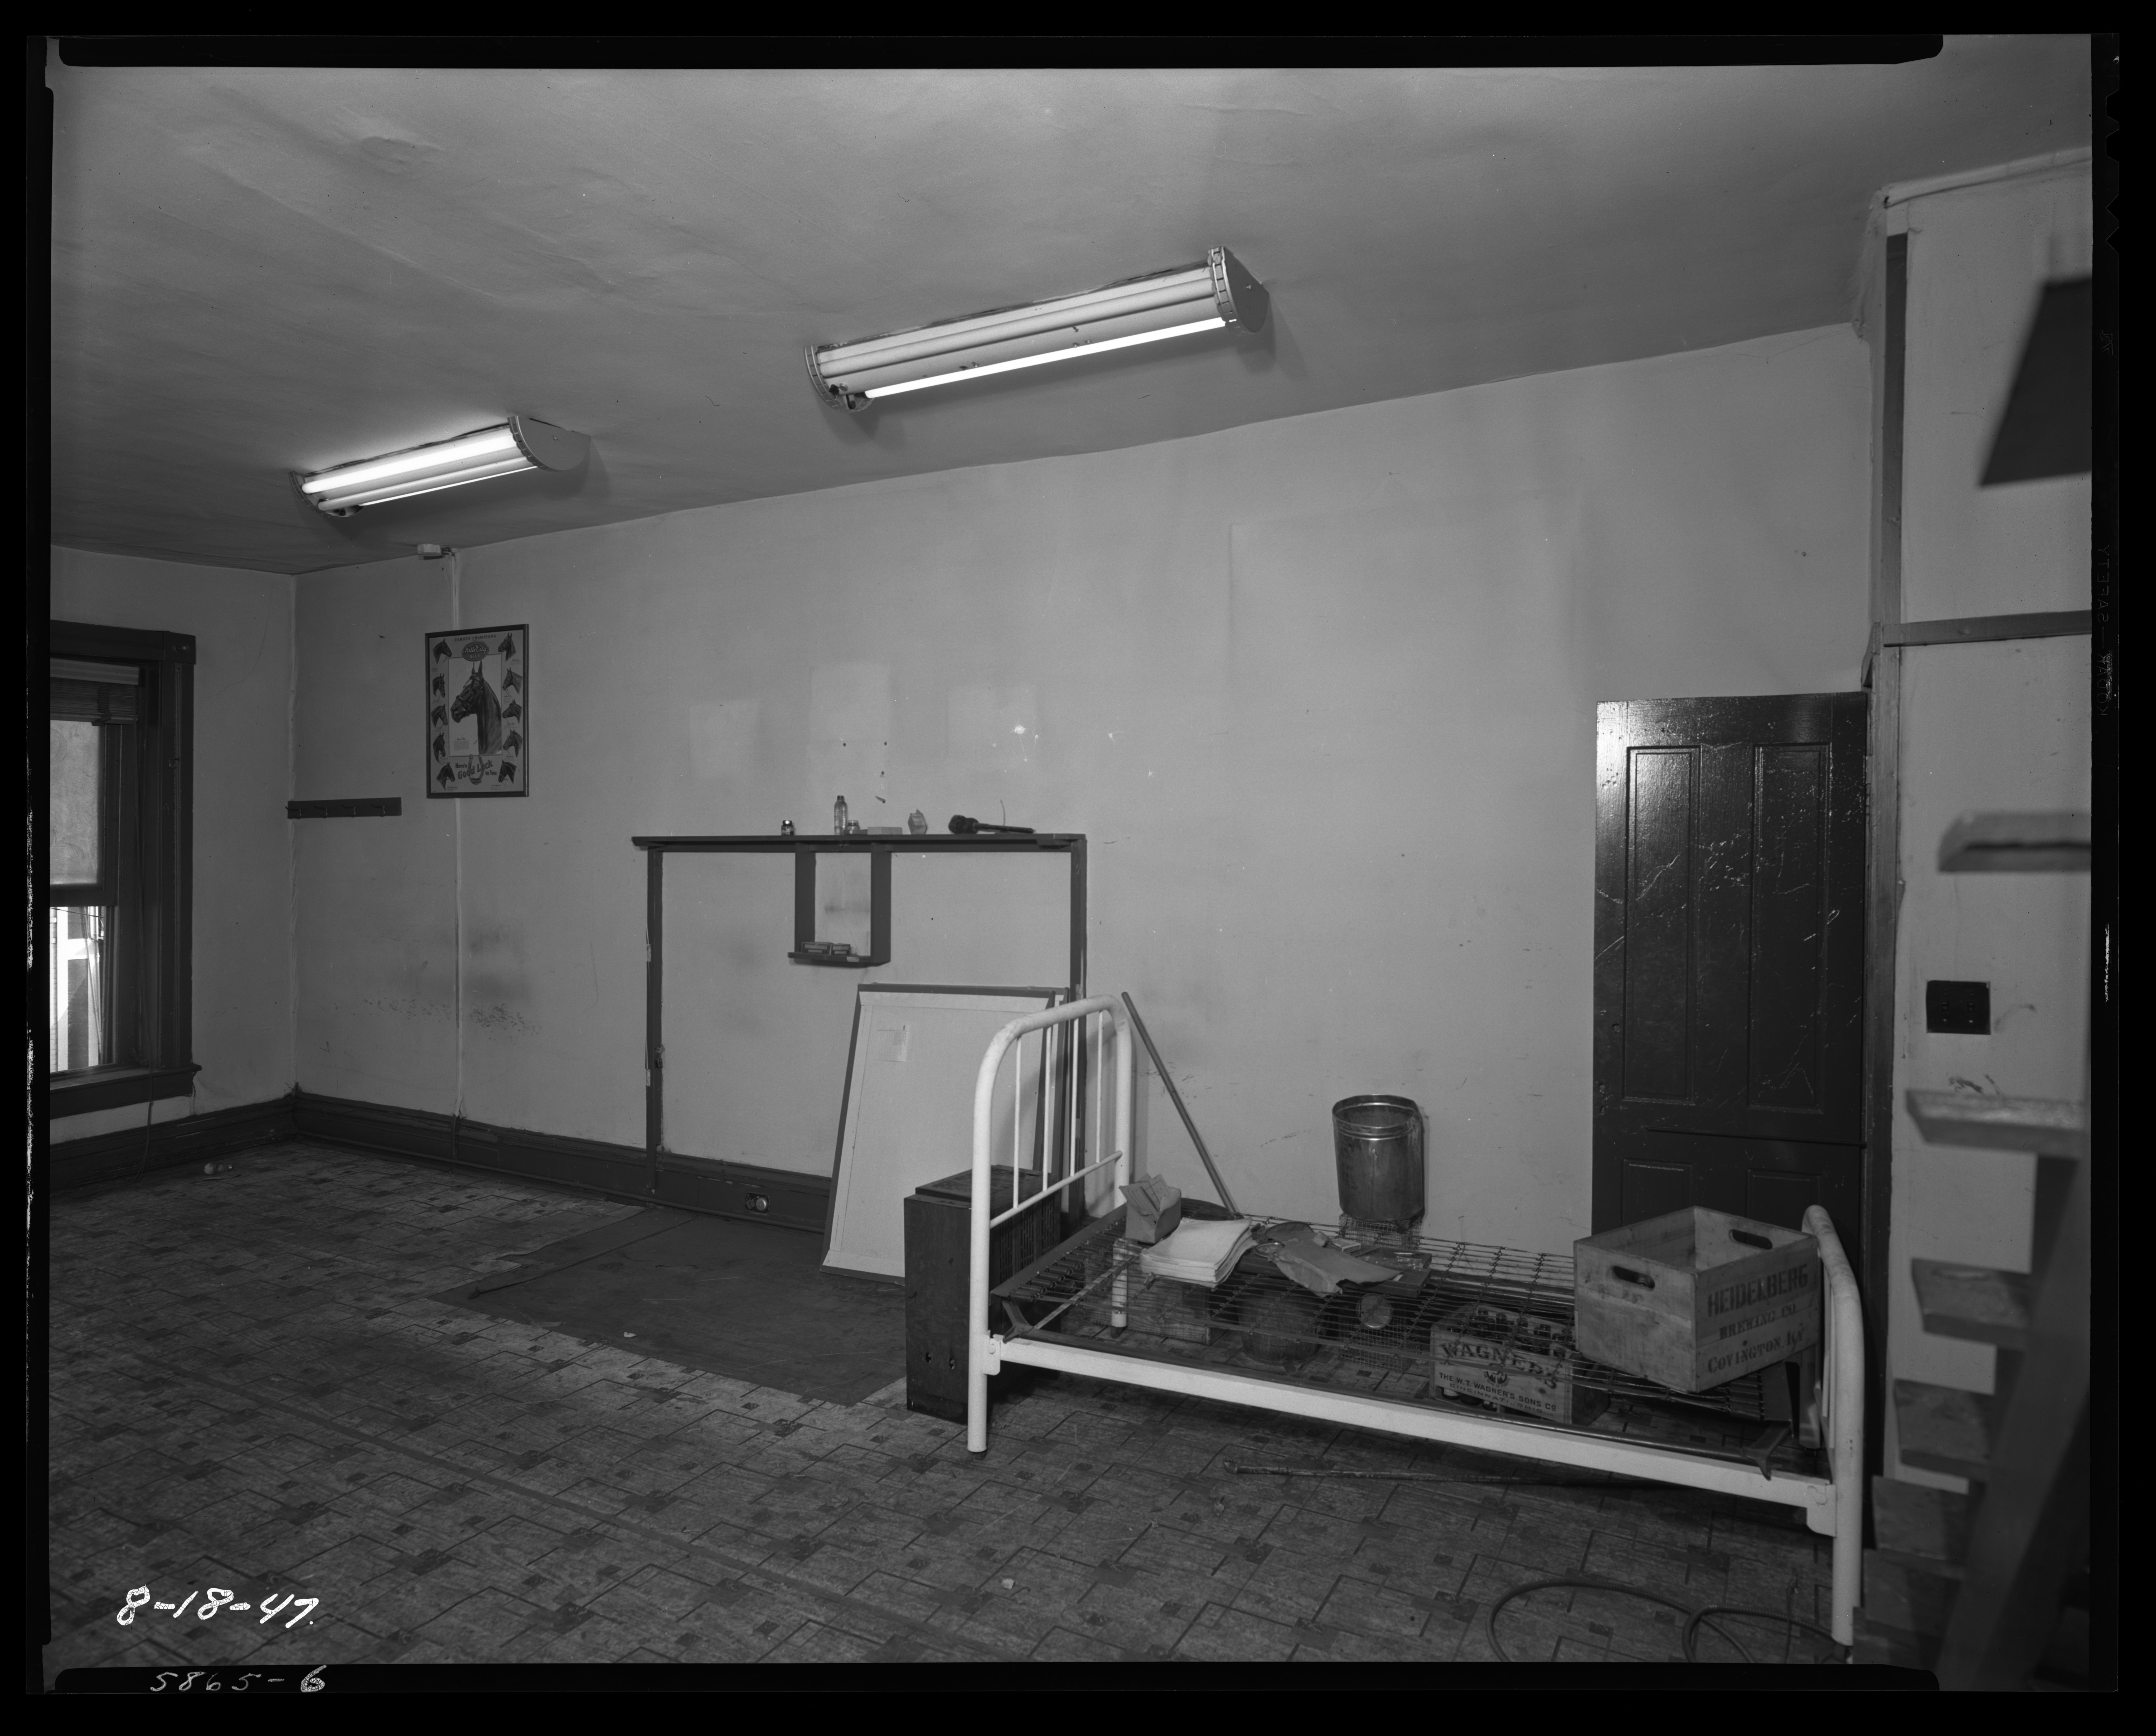 zoo cafe building, interior (117 south limestone); f.w. woolworth